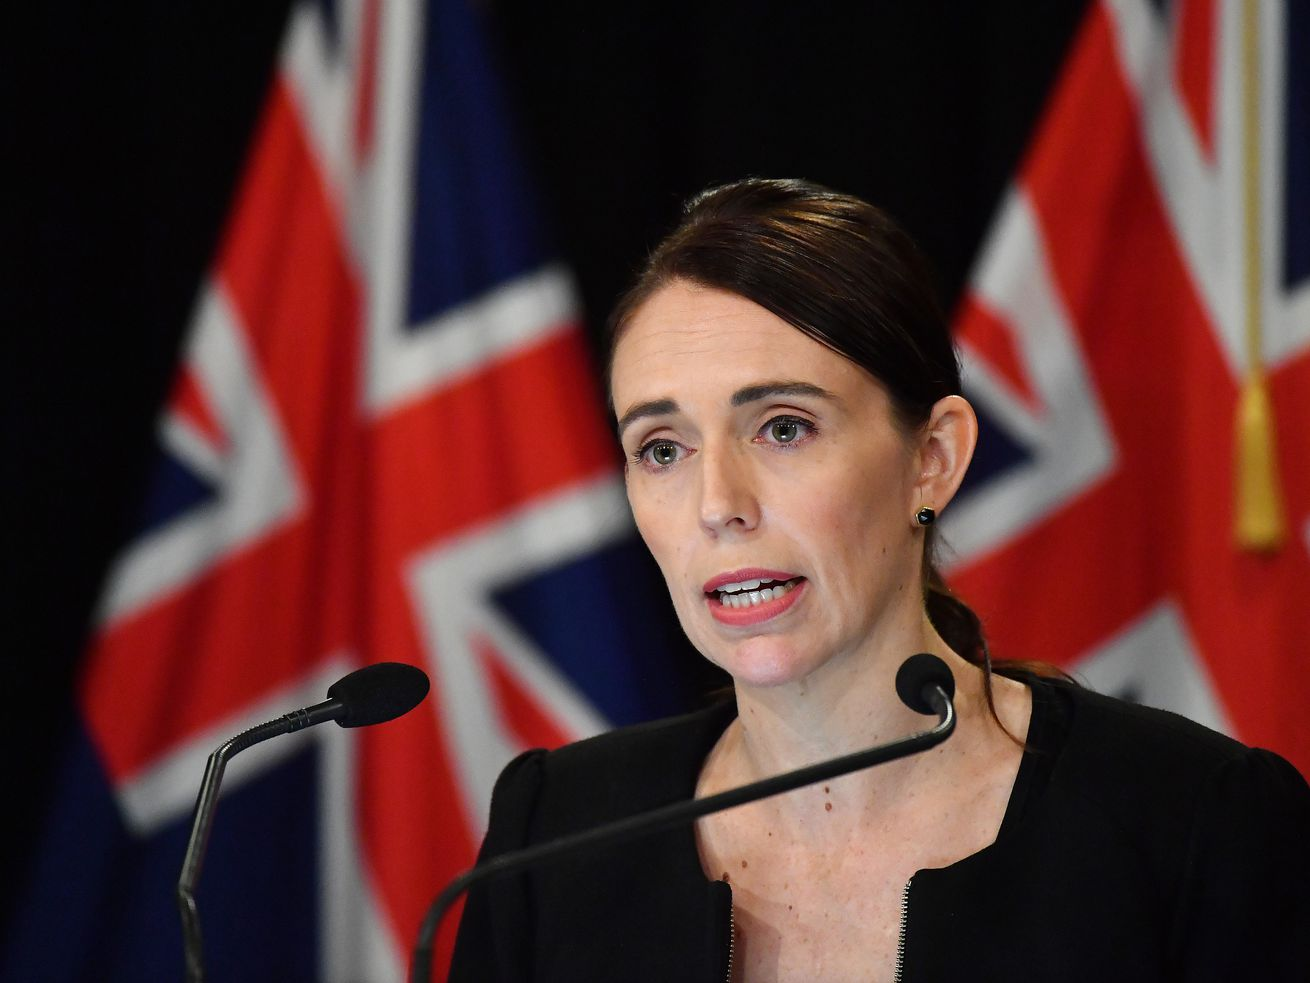 New Zealand Prime Minister Jacinda Ardern speaks to media to address the Christchurch mass shootings.